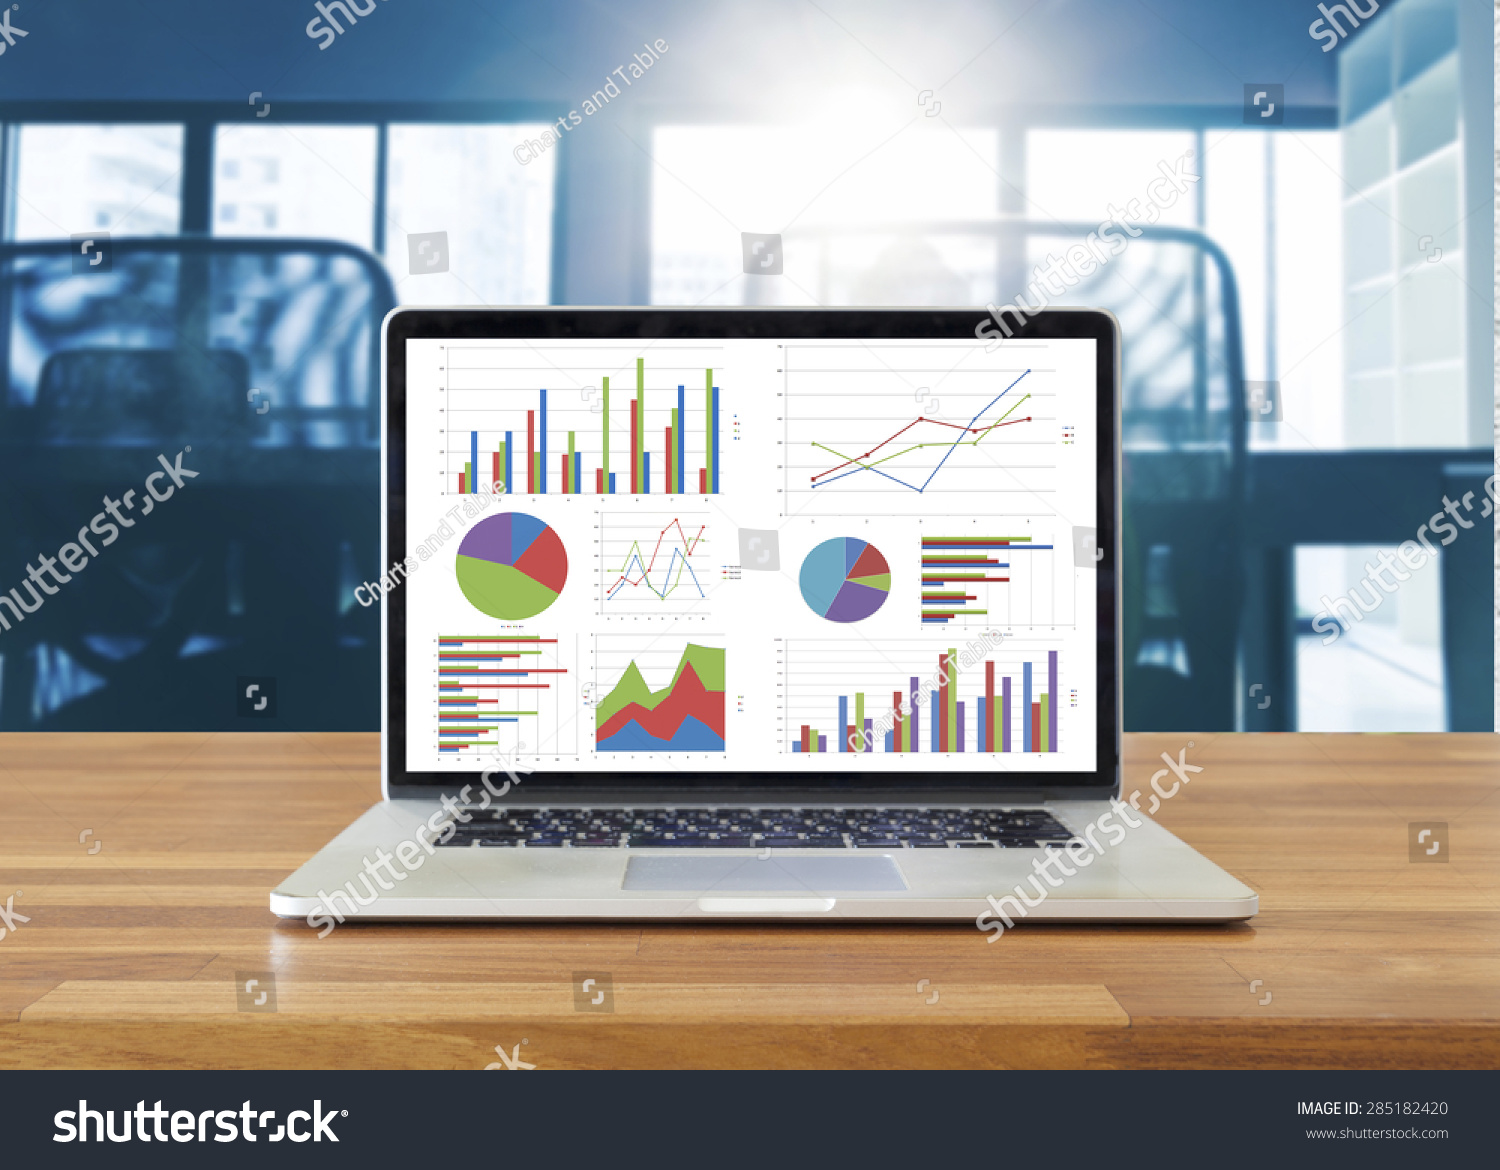 laptop on wooden table showing charts and graph against